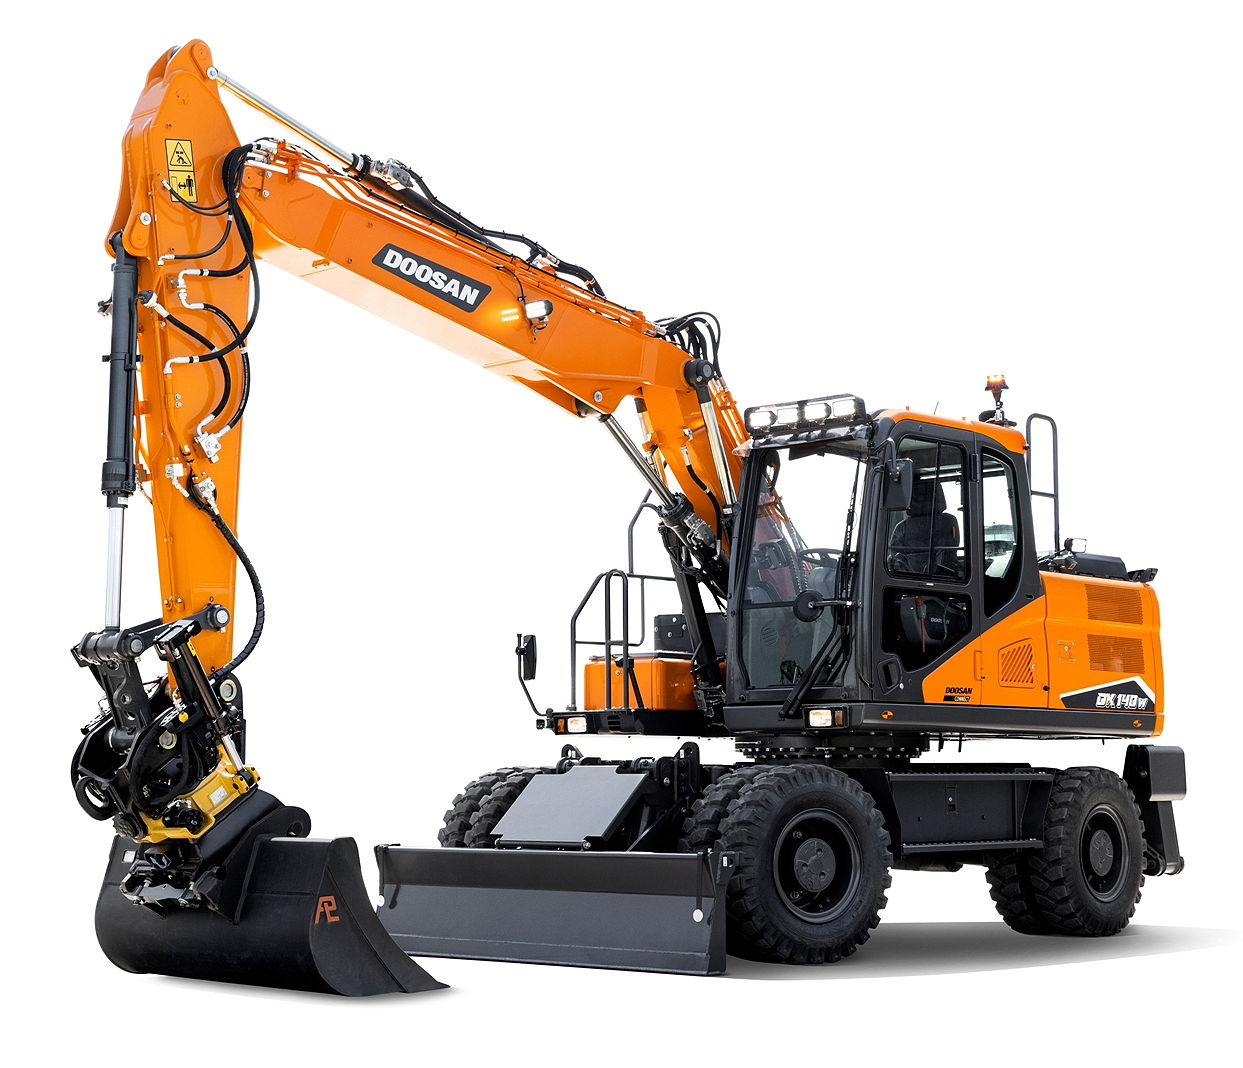 Both new wheeled excavators feature a Stage V, six-cylinder Doosan diesel engine offering 137hp at 2,000rpm